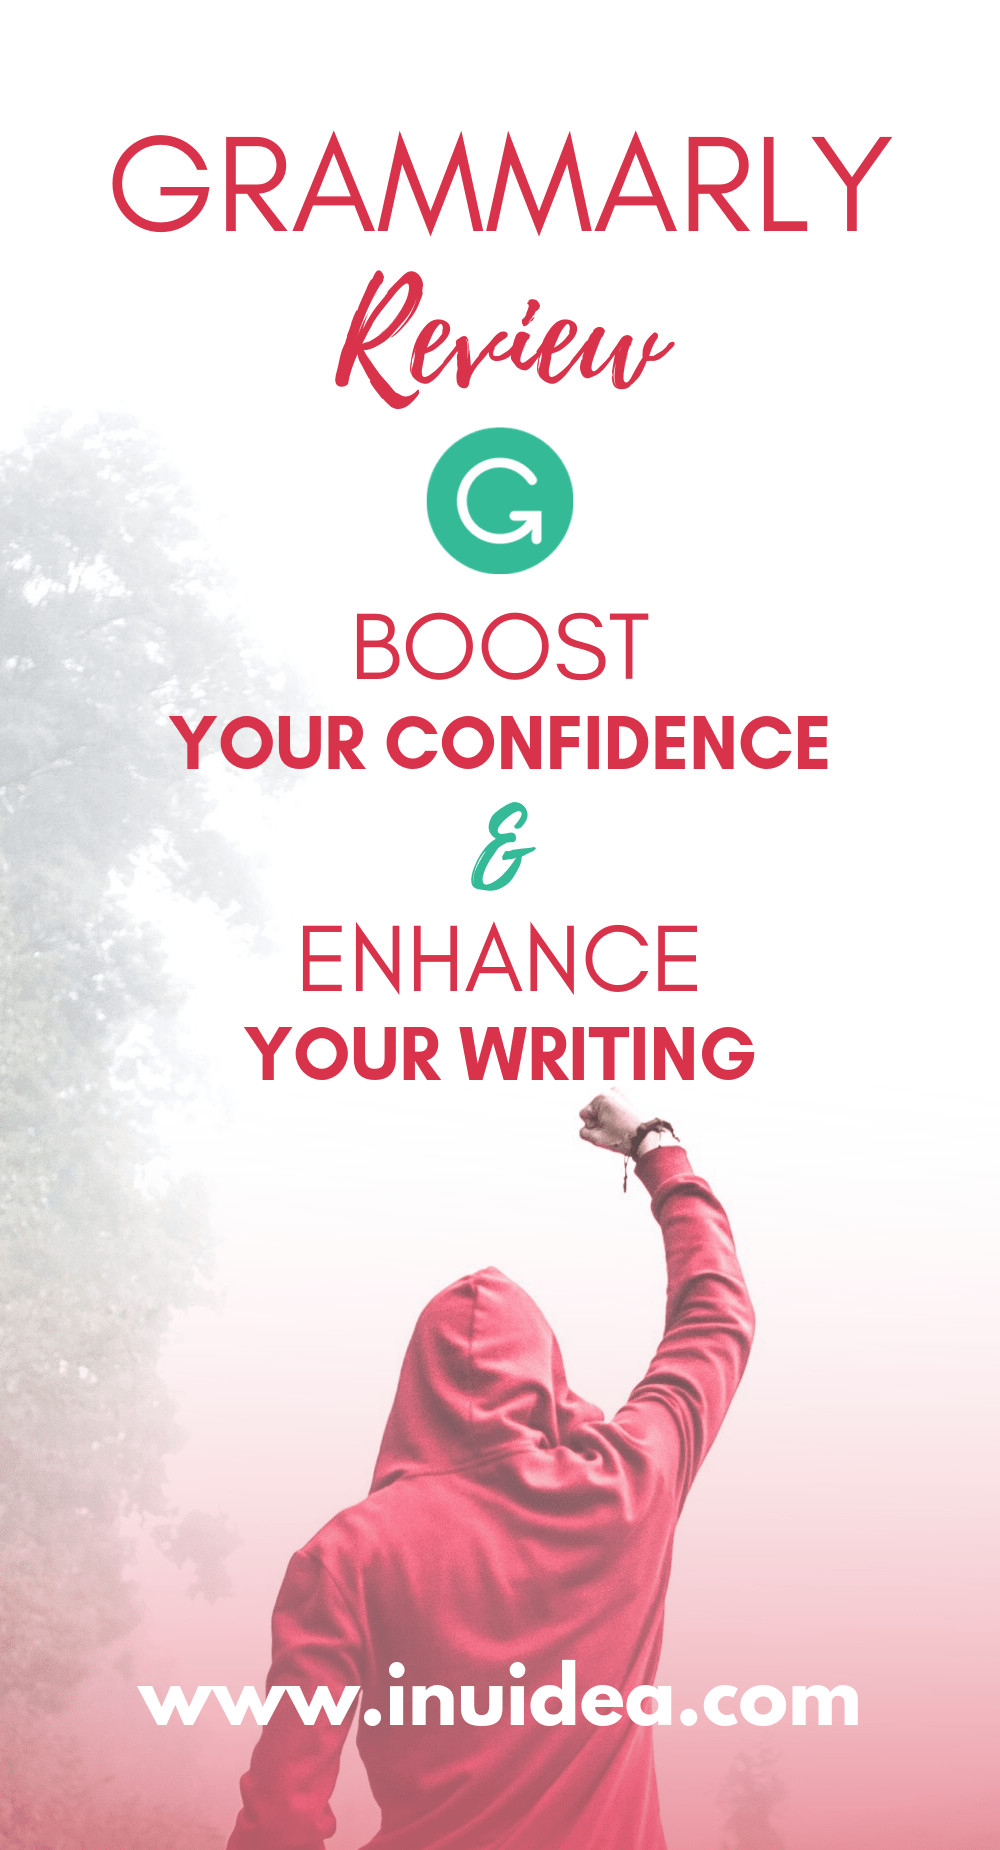 50% Off Coupon Printable Grammarly